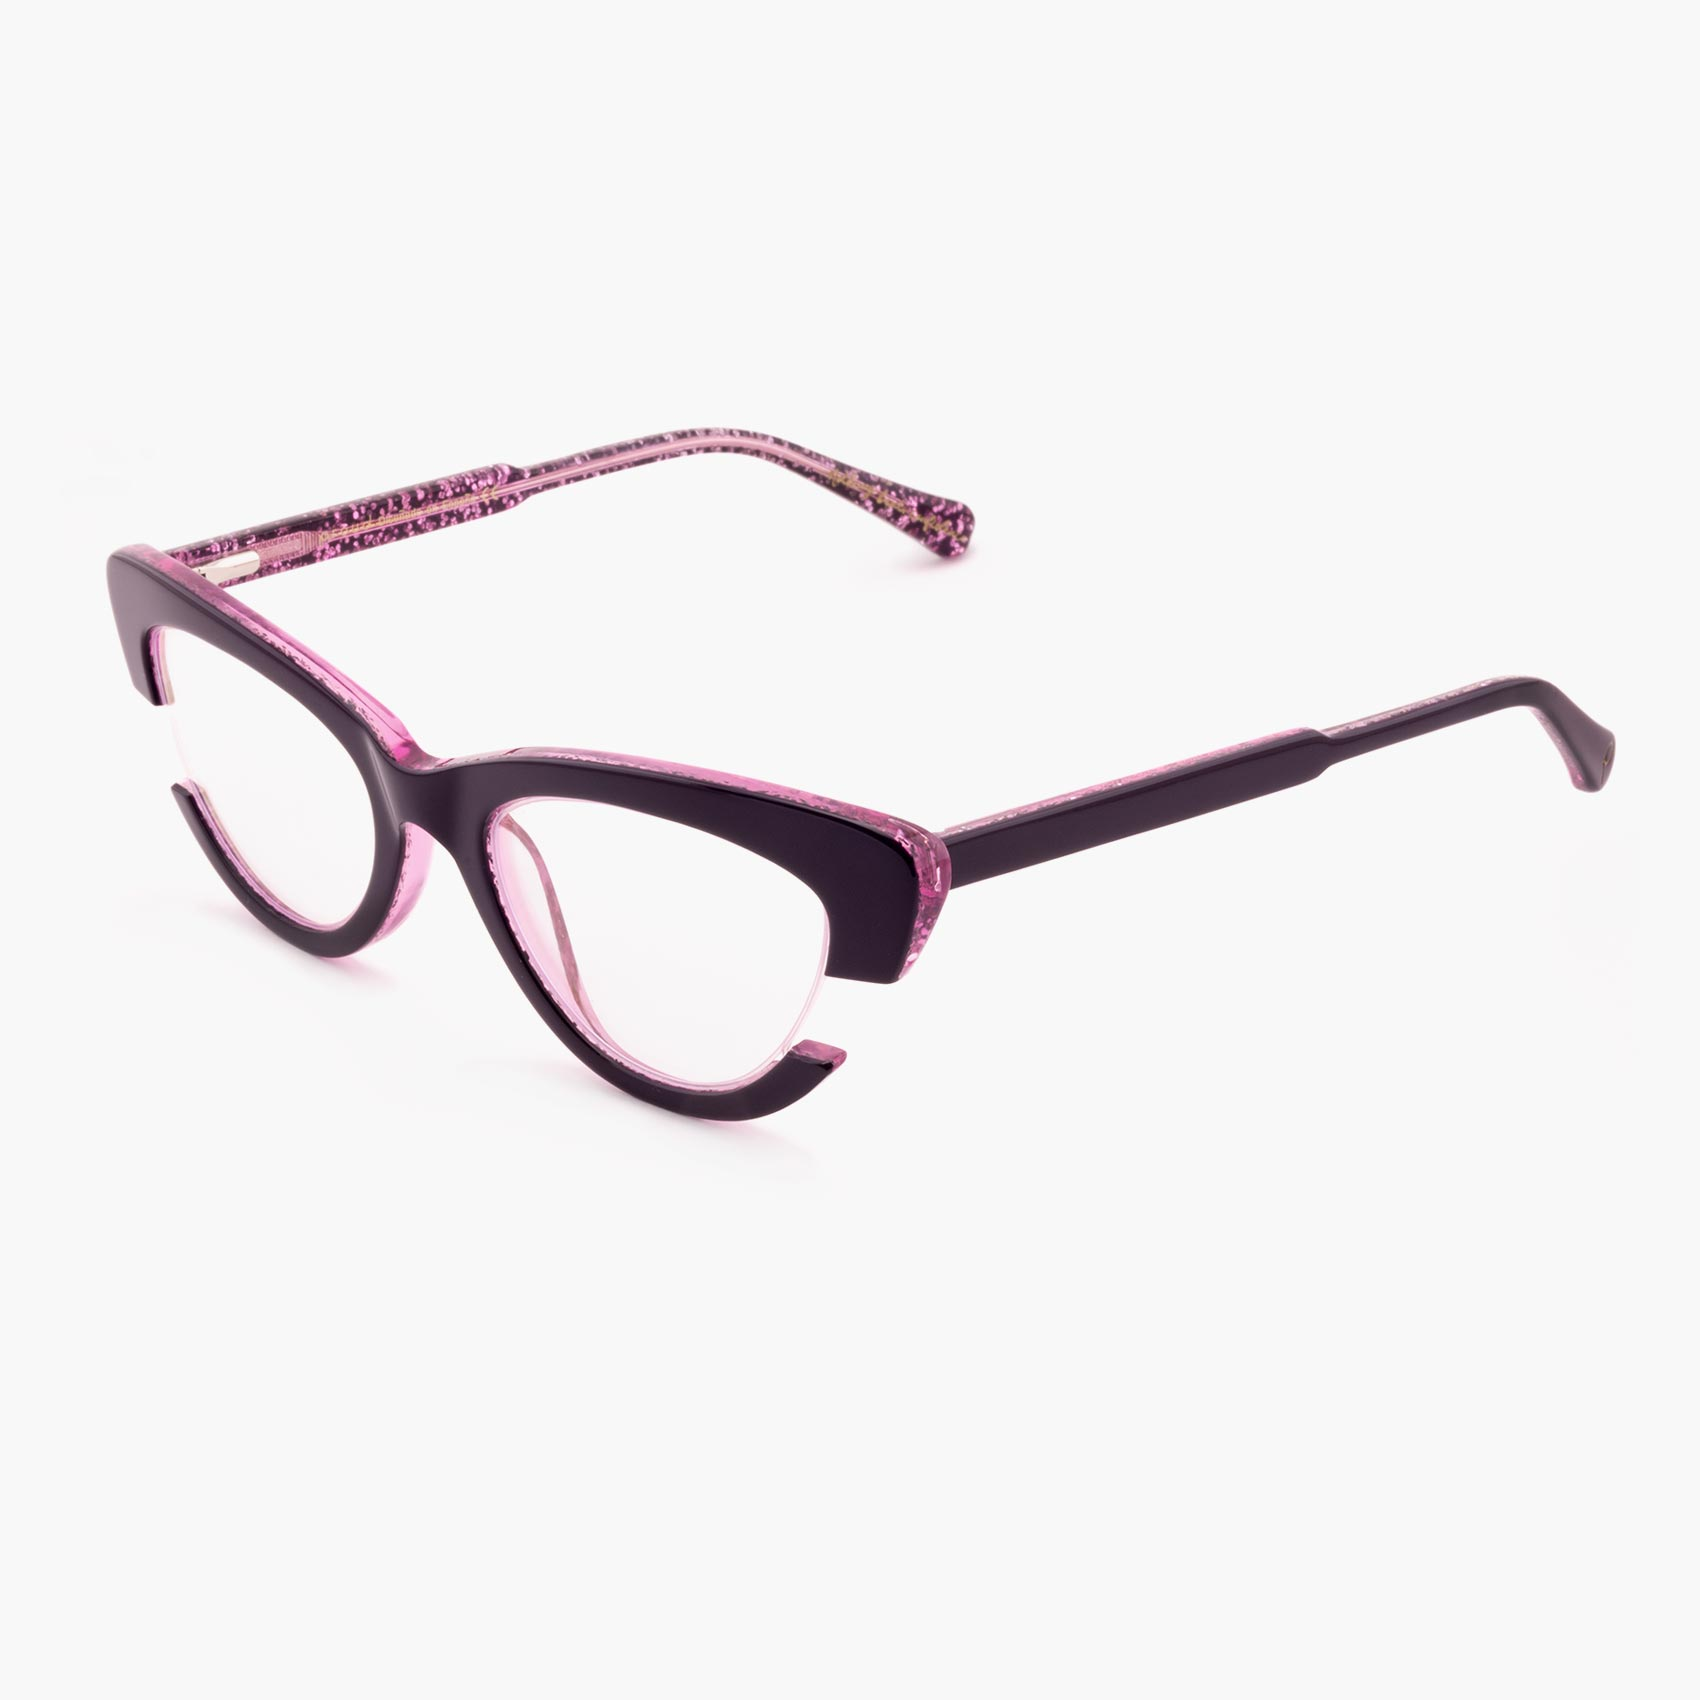 Proud eyewear Jennifer C4 P gafas de vista mujer cat eye